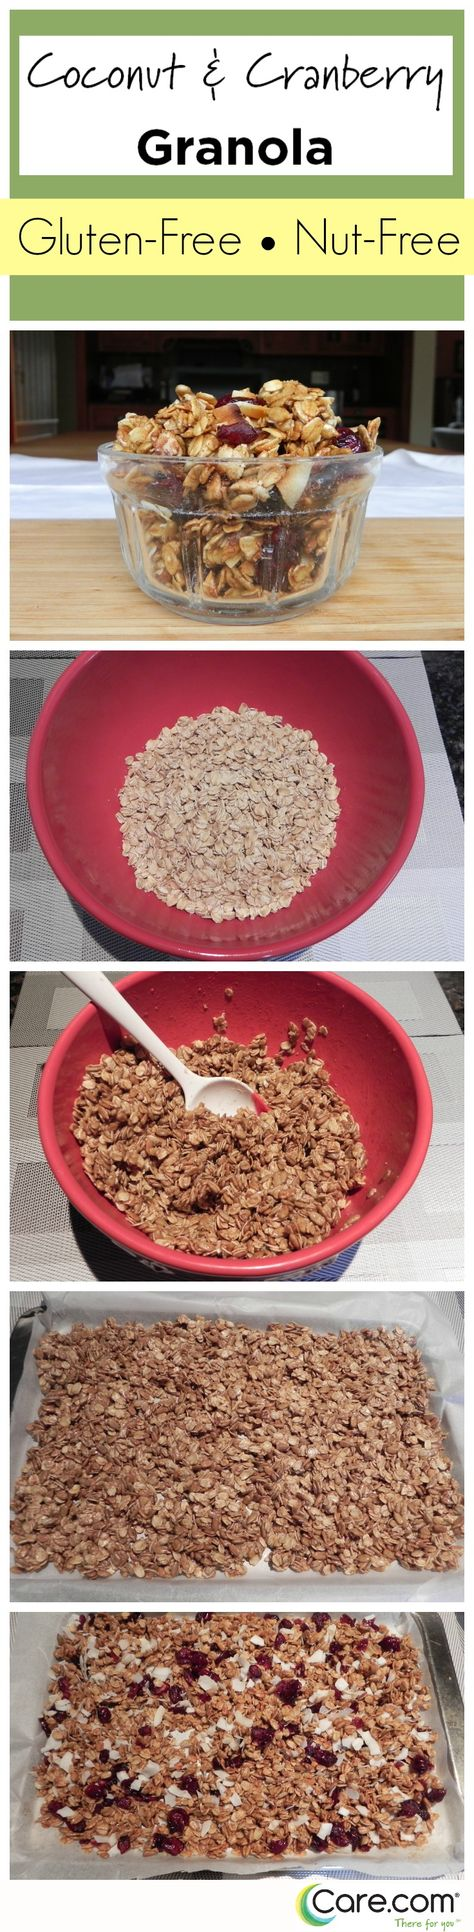 Nut-free granola makes a great breakfast or snack for kids and parents! Everyone will love this healthy homemade recipe